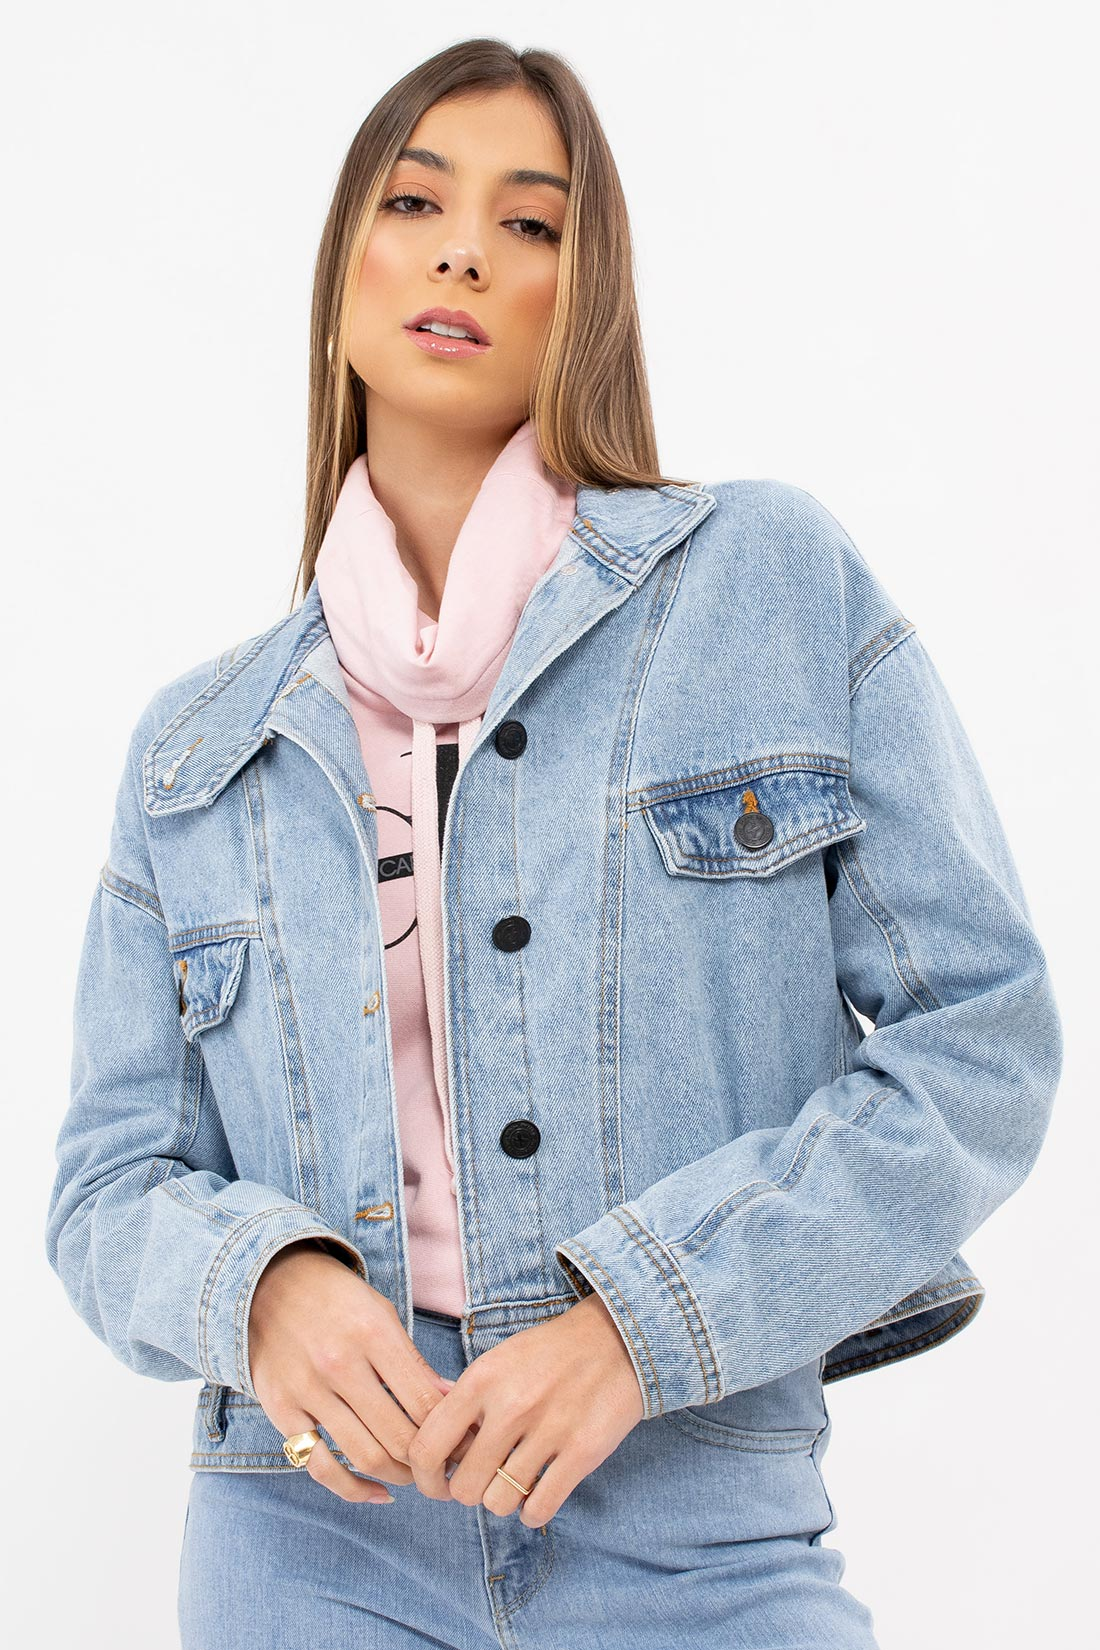 Jaqueta Hering Jeans Botoes